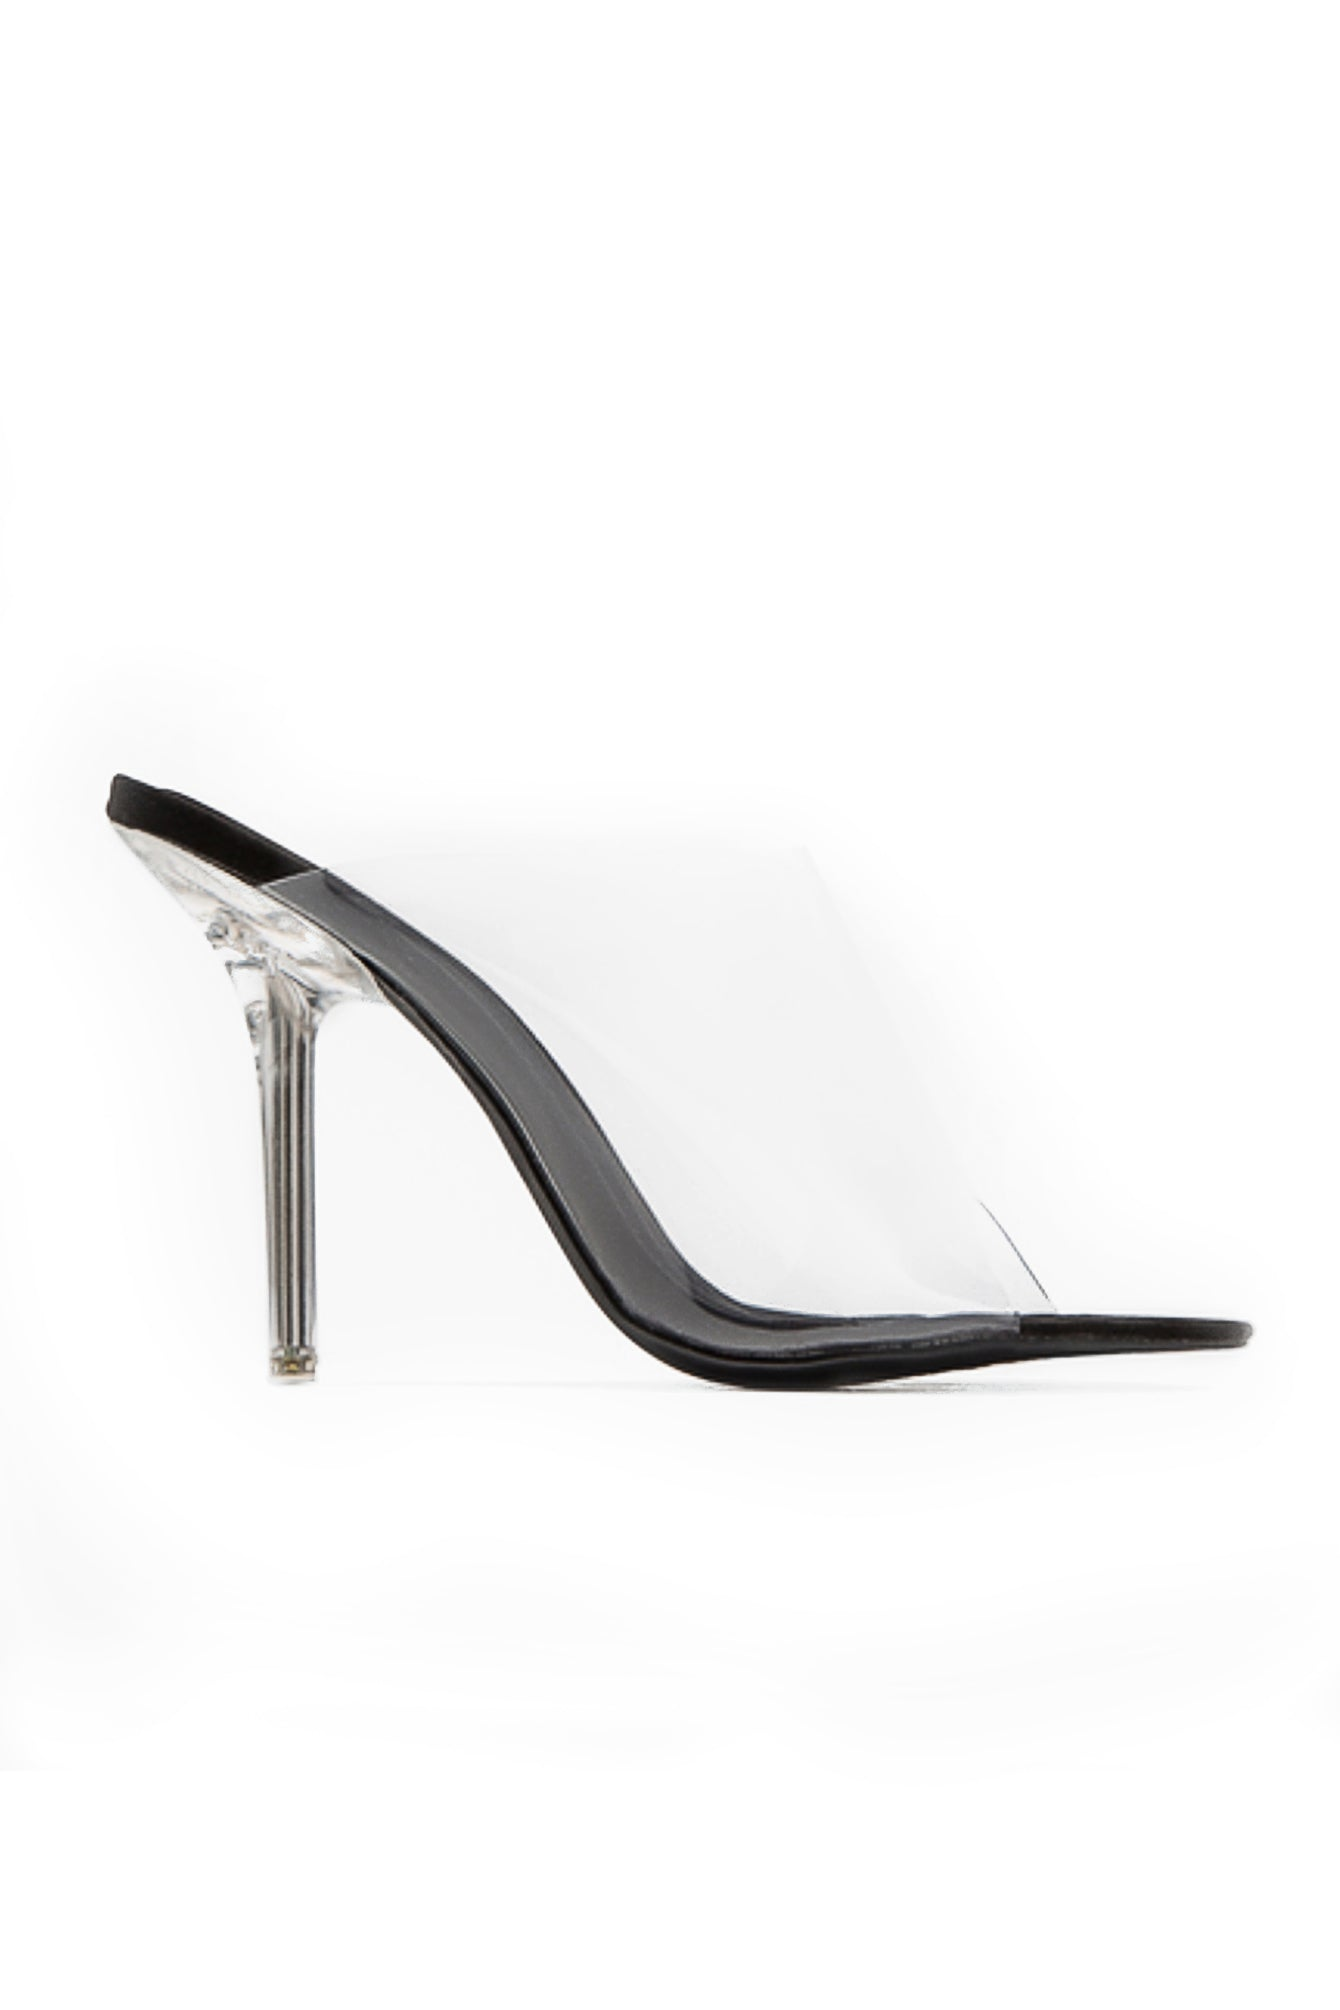 Clear Transparent High Heel Mules